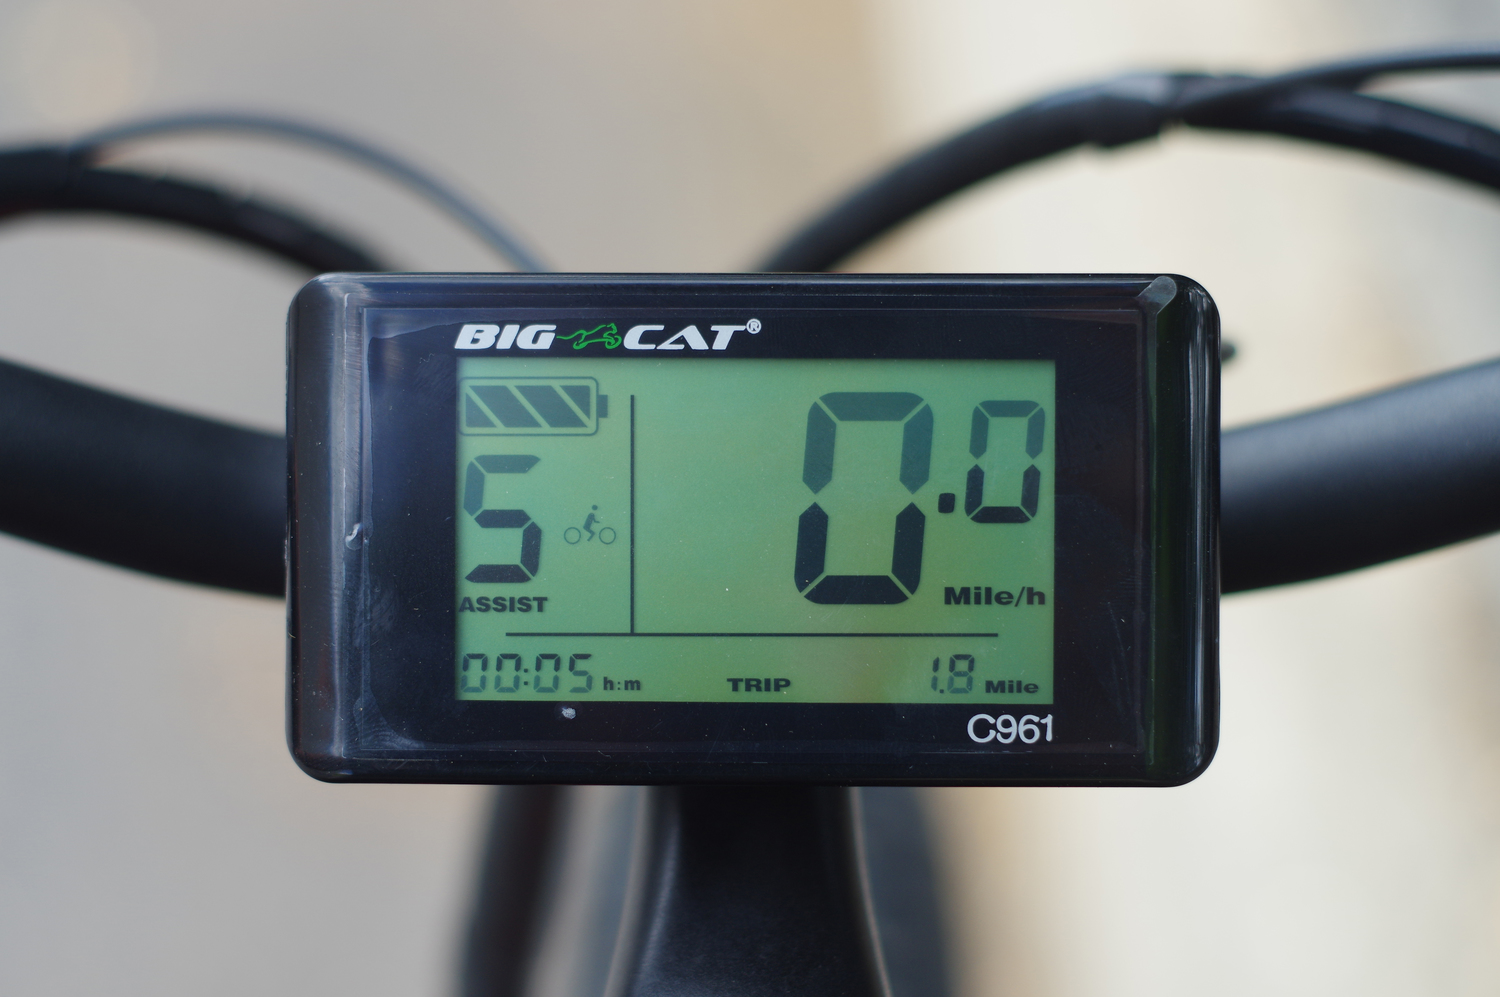 bafang C961 big cat fat cat x